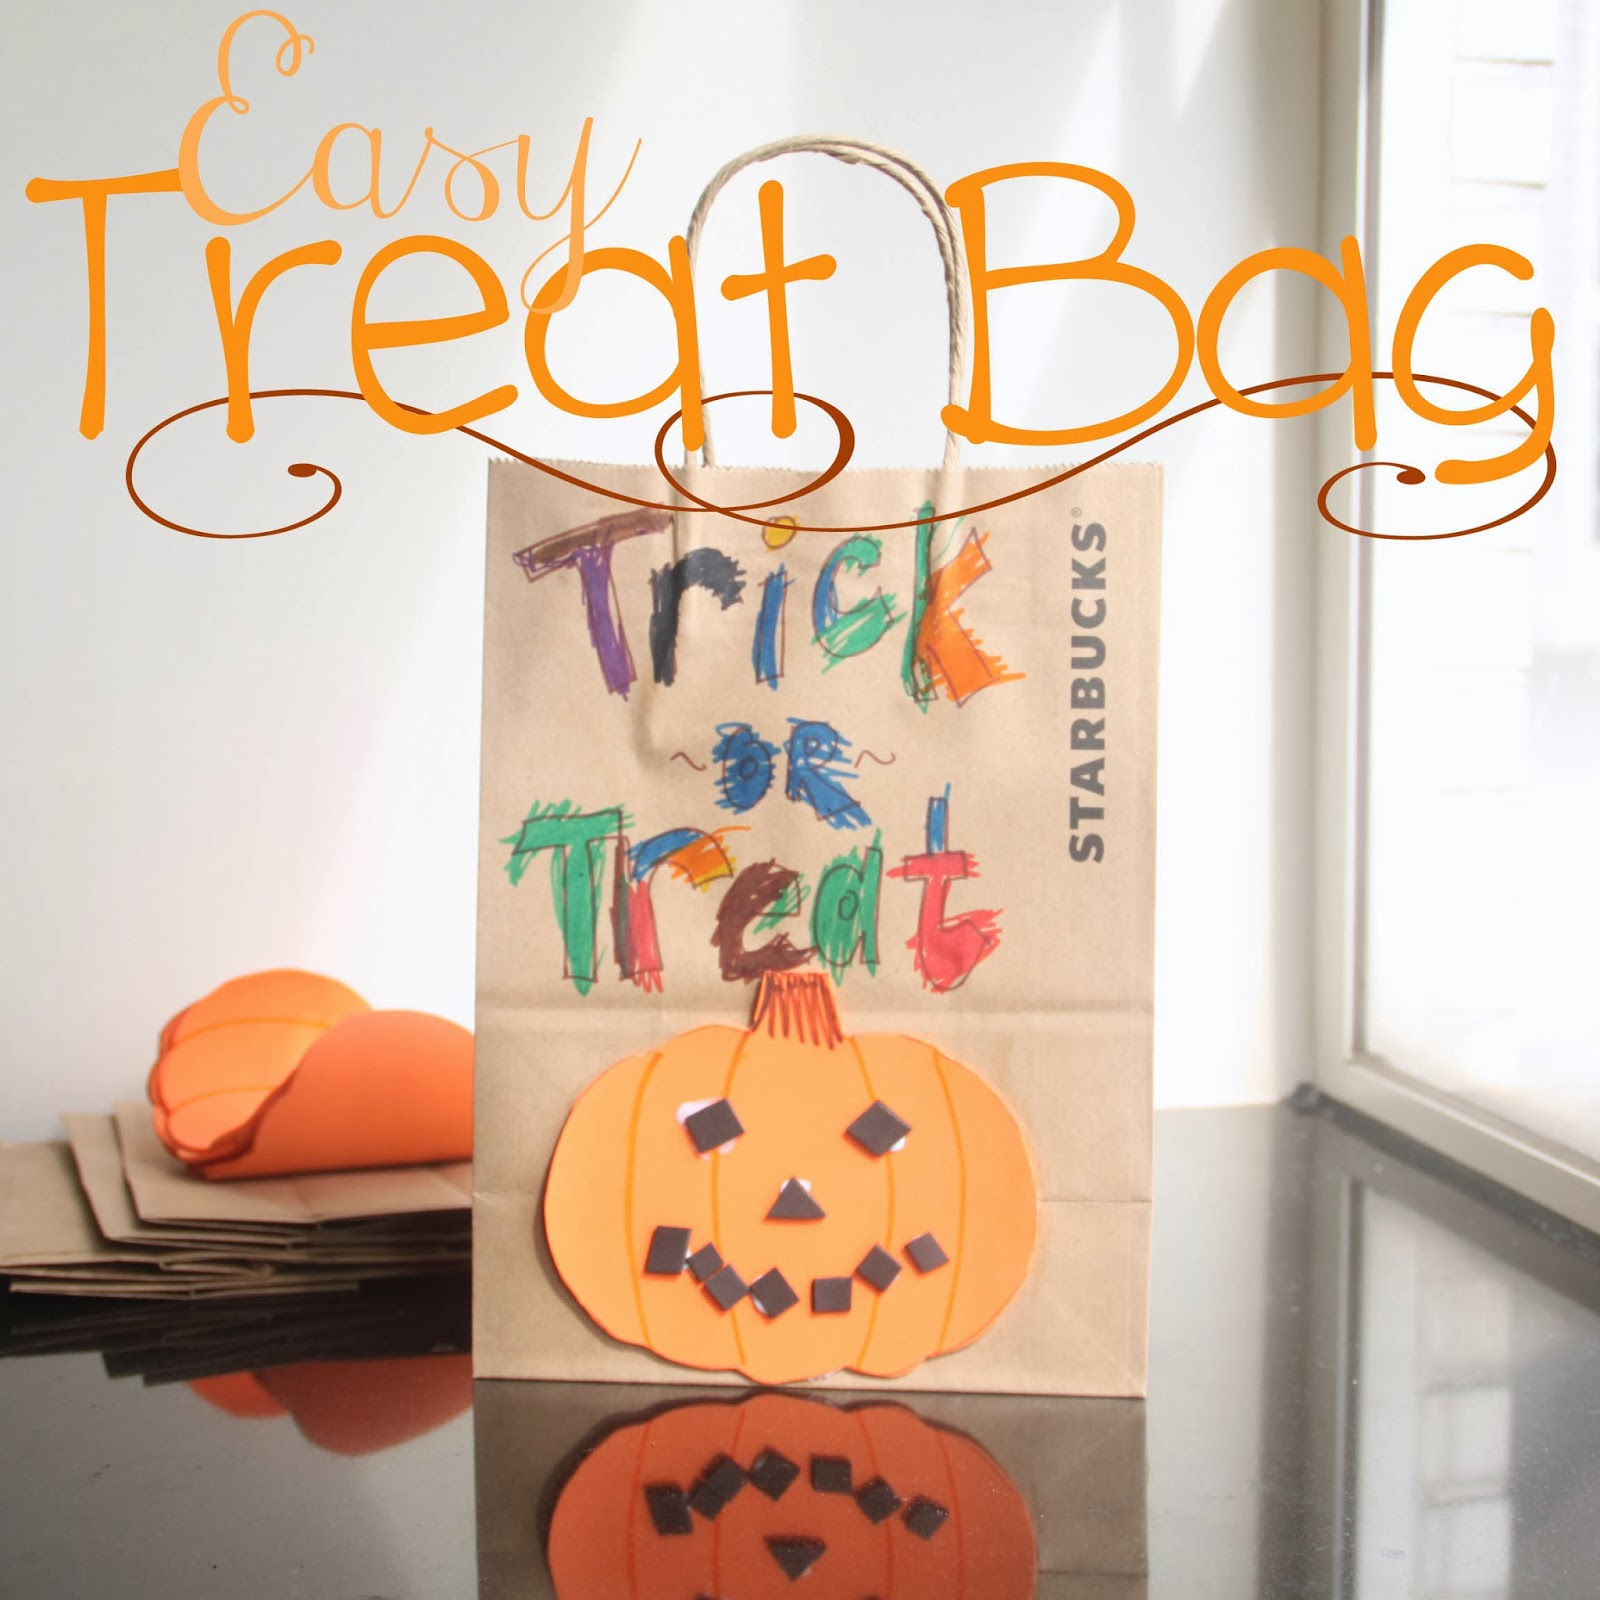 Halloween Party Supplies Toy Assortment Goody Bags for Kids' trick-or-treat Party Favor, Halloween Gifts 72Pcs F Add To Cart There is a problem adding to cart.